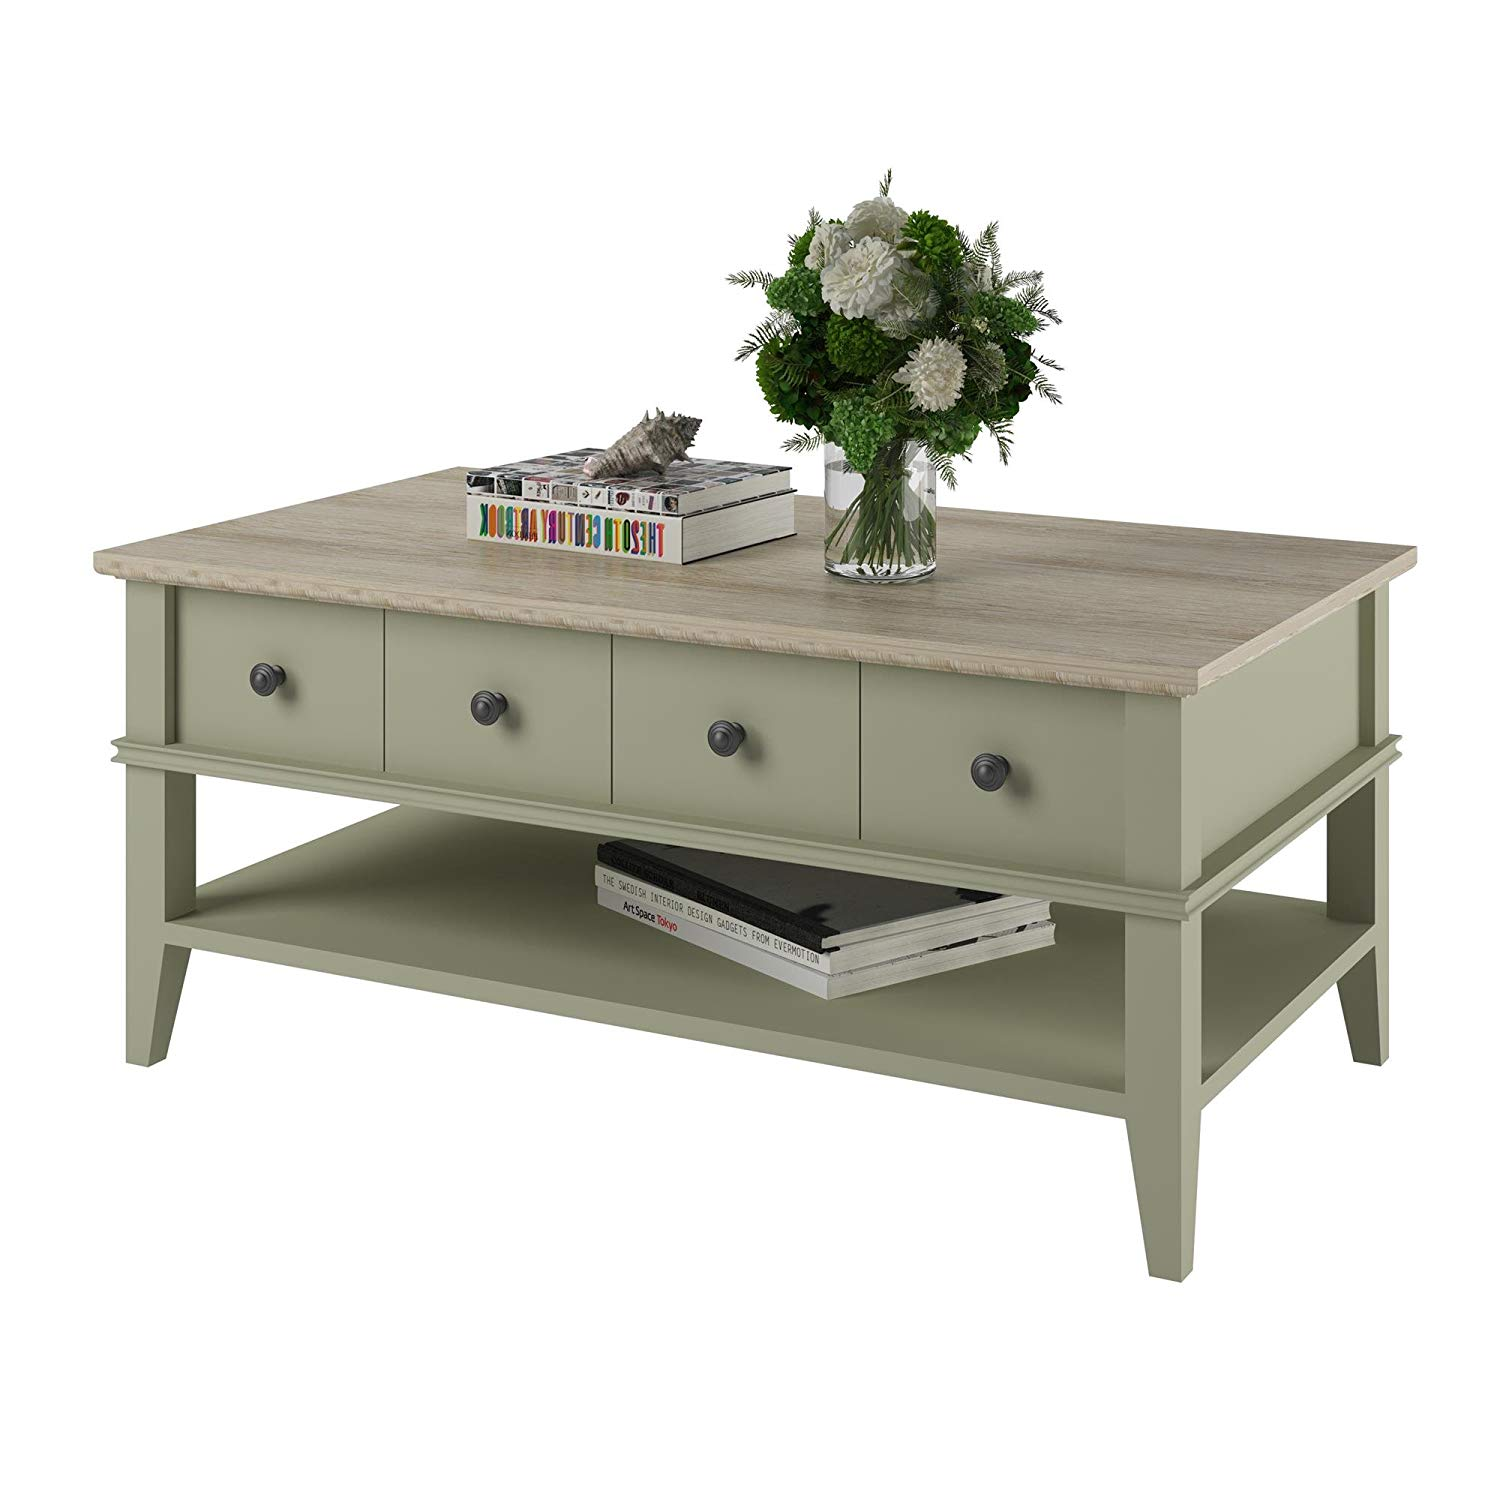 end tables designs green ked and painted she said with regard ameriwood home newport coffee table sage kitchen dining throughout target hafley accent glass nightstand game console